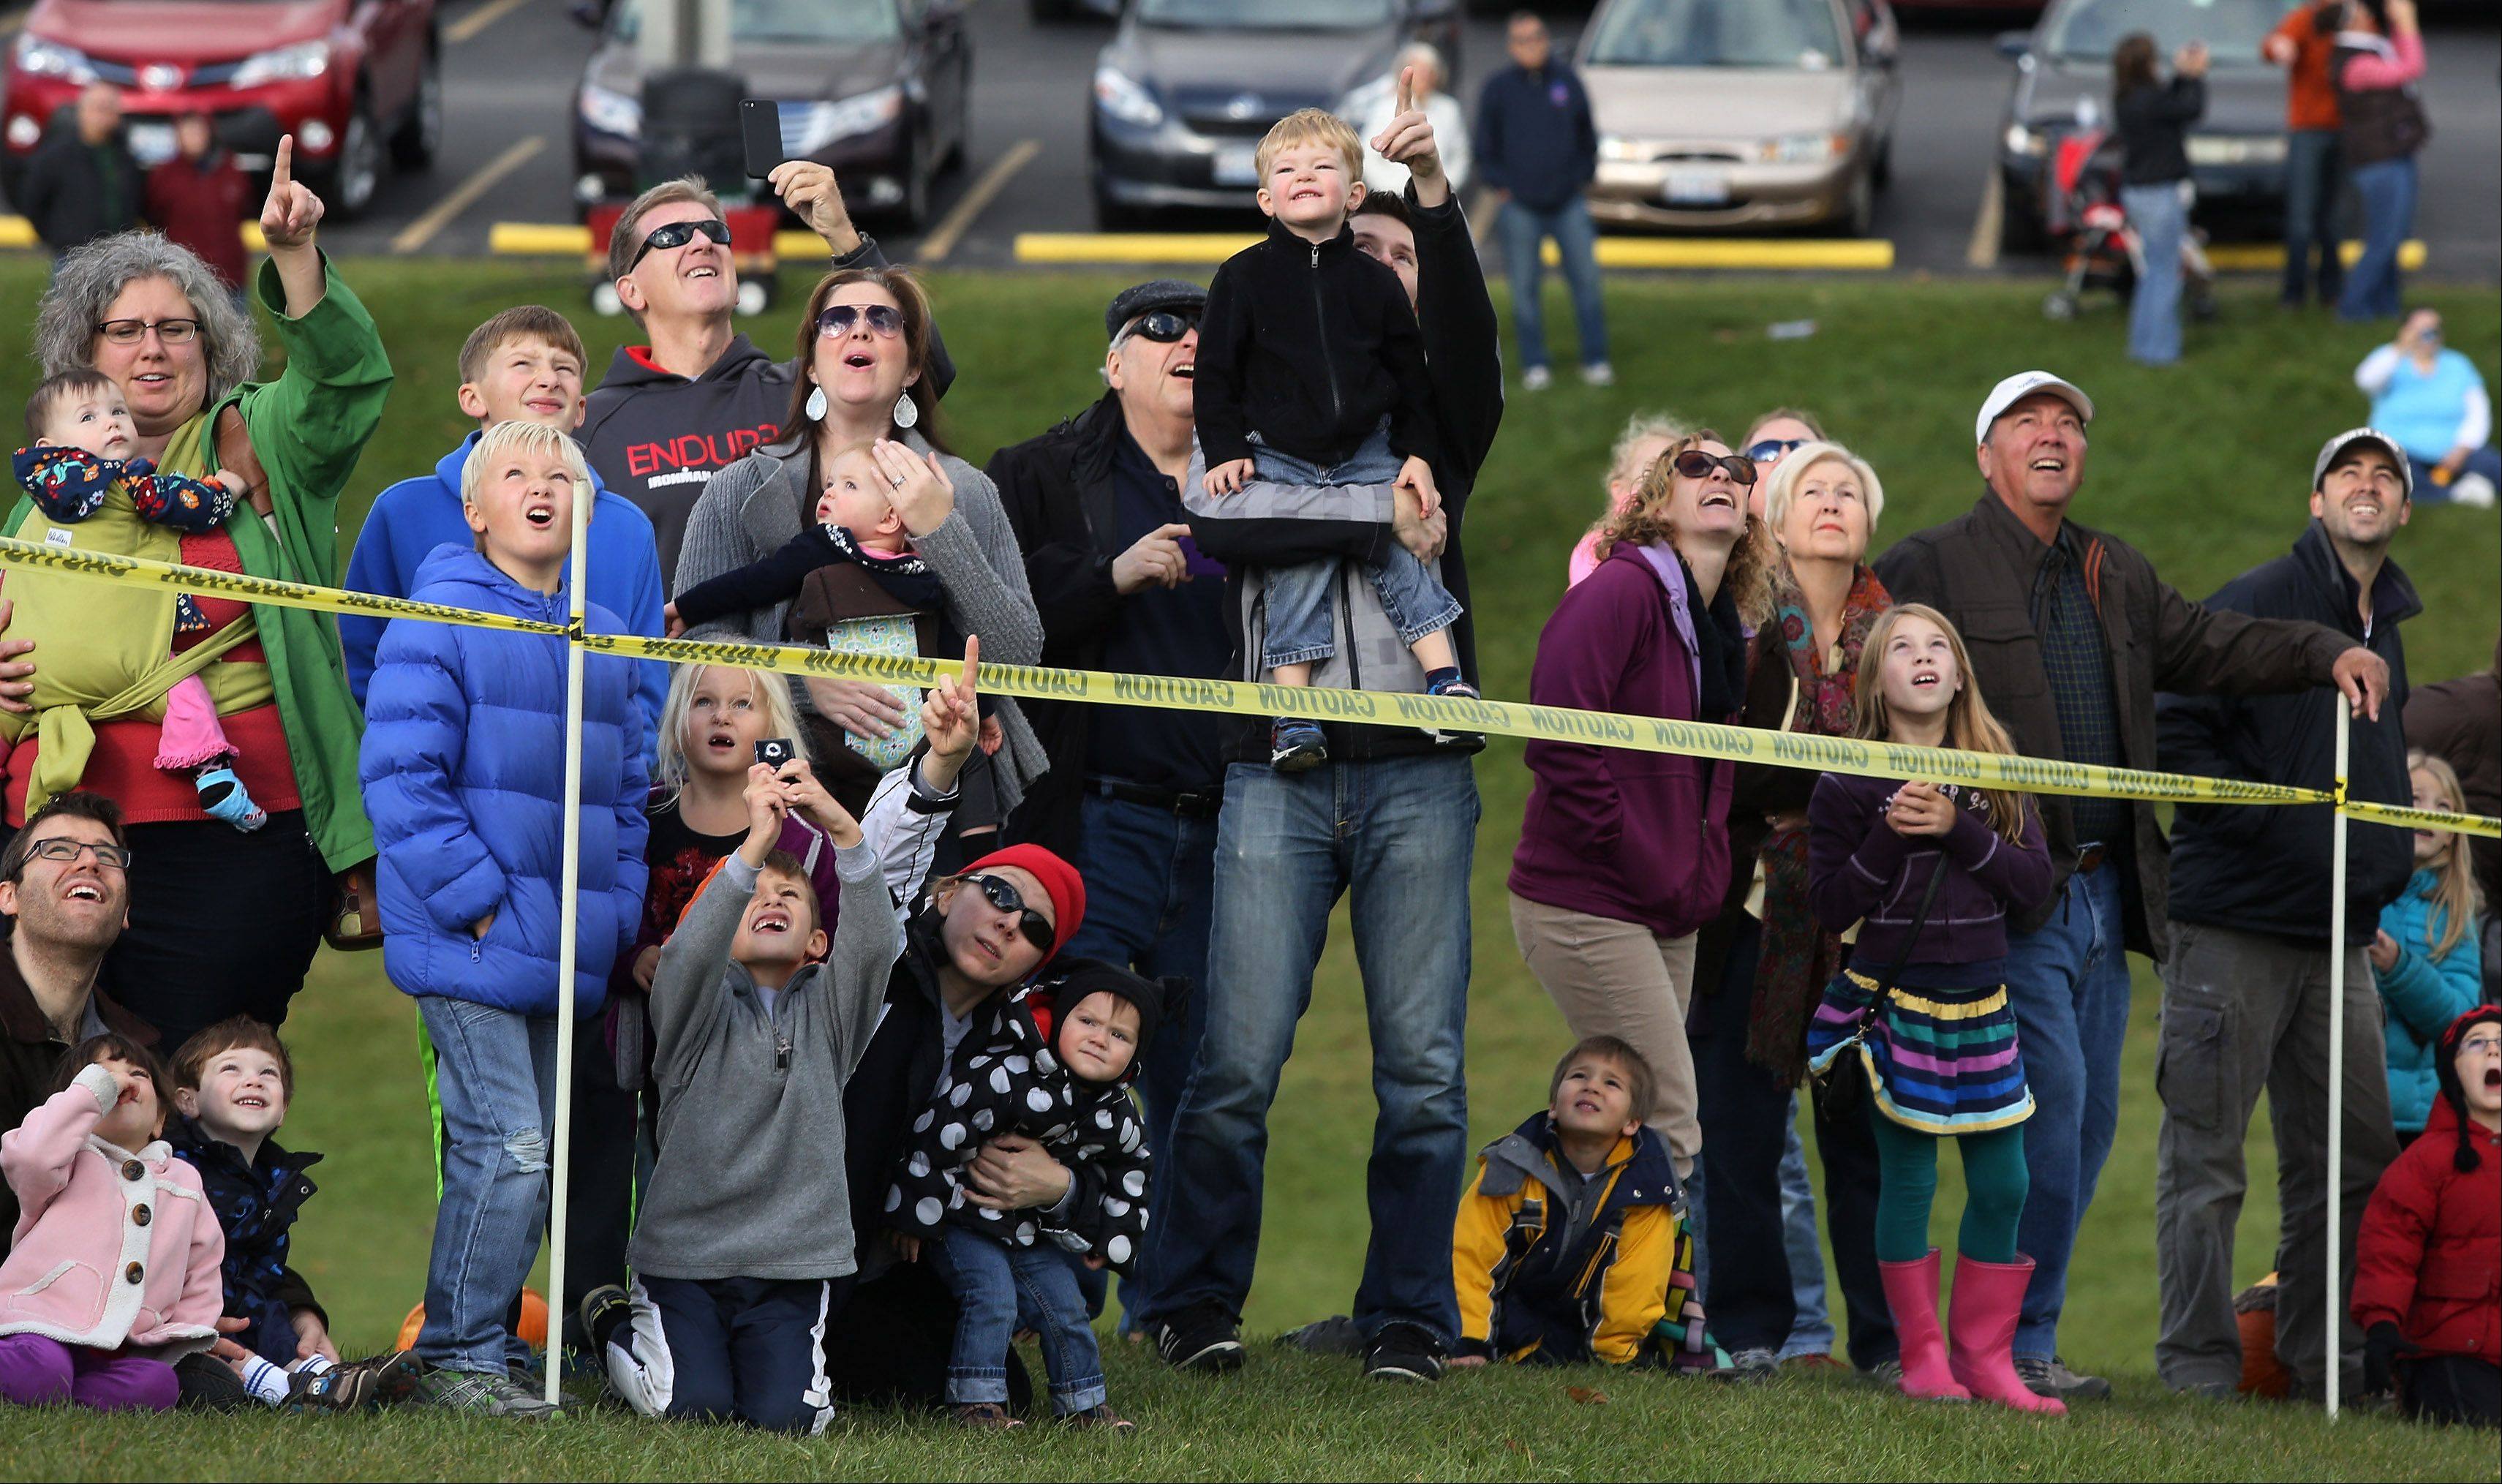 Spectators watch the launch of another pumpkin by Big Red the catapult during Mundelein's 6th annual Pumpkin Drop Sunday at Keith Mione Community Park. Families brought their Halloween pumpkins to the event where they were bashed, rolled and flung with a catapult.